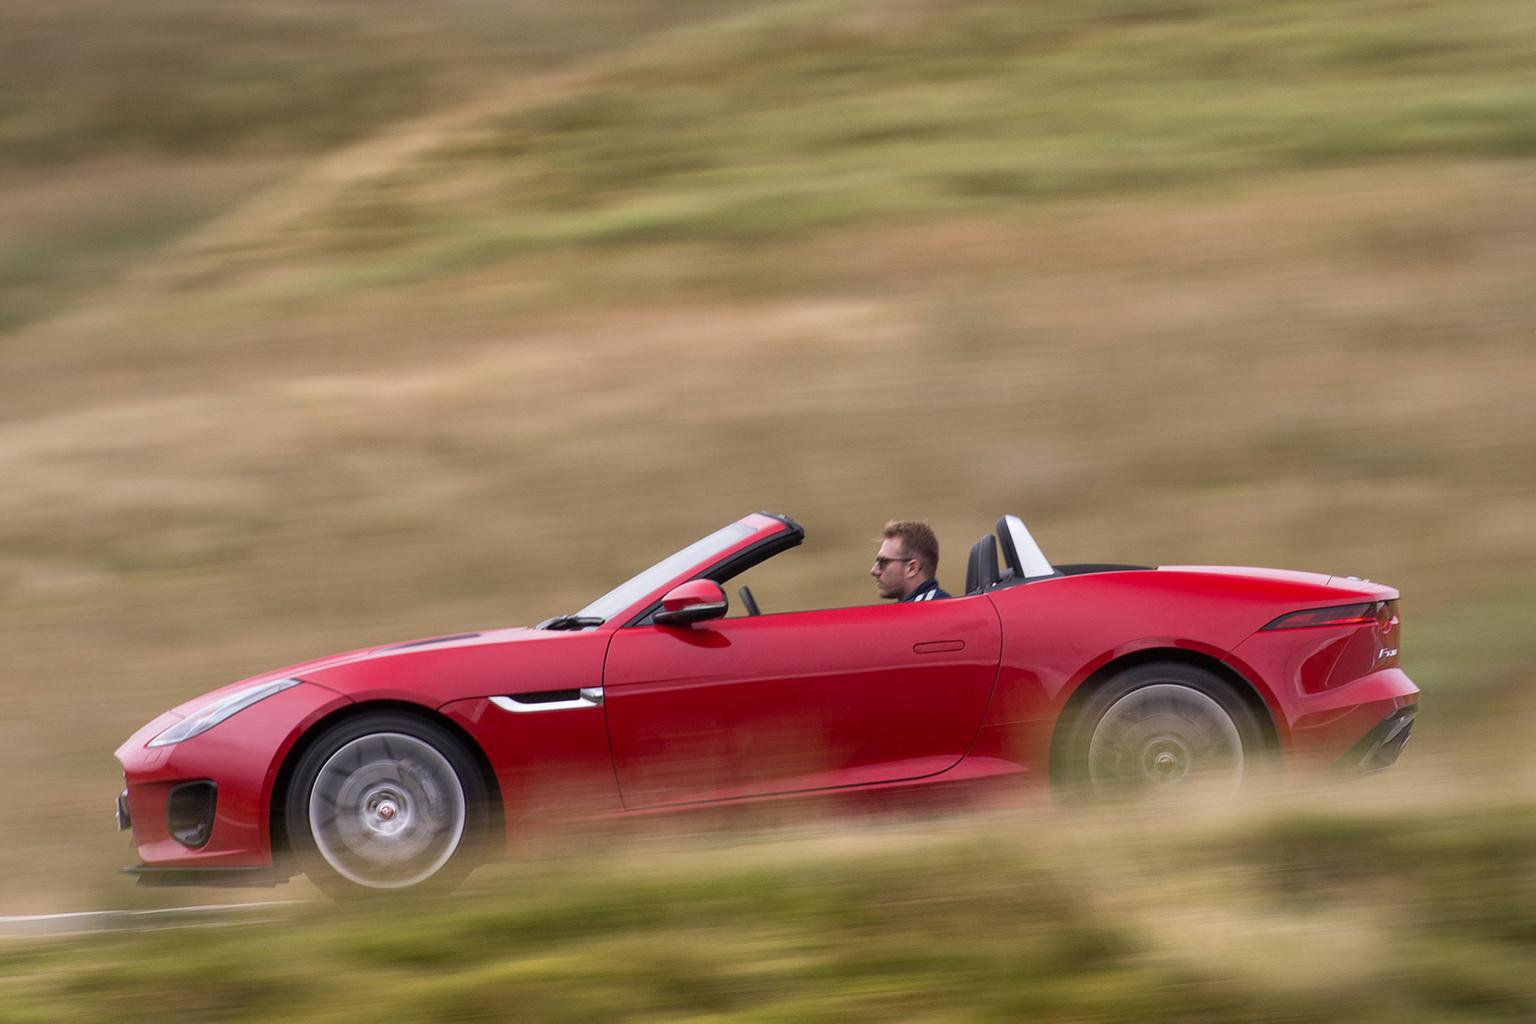 Used Jaguar F-Type Convertible 13-present